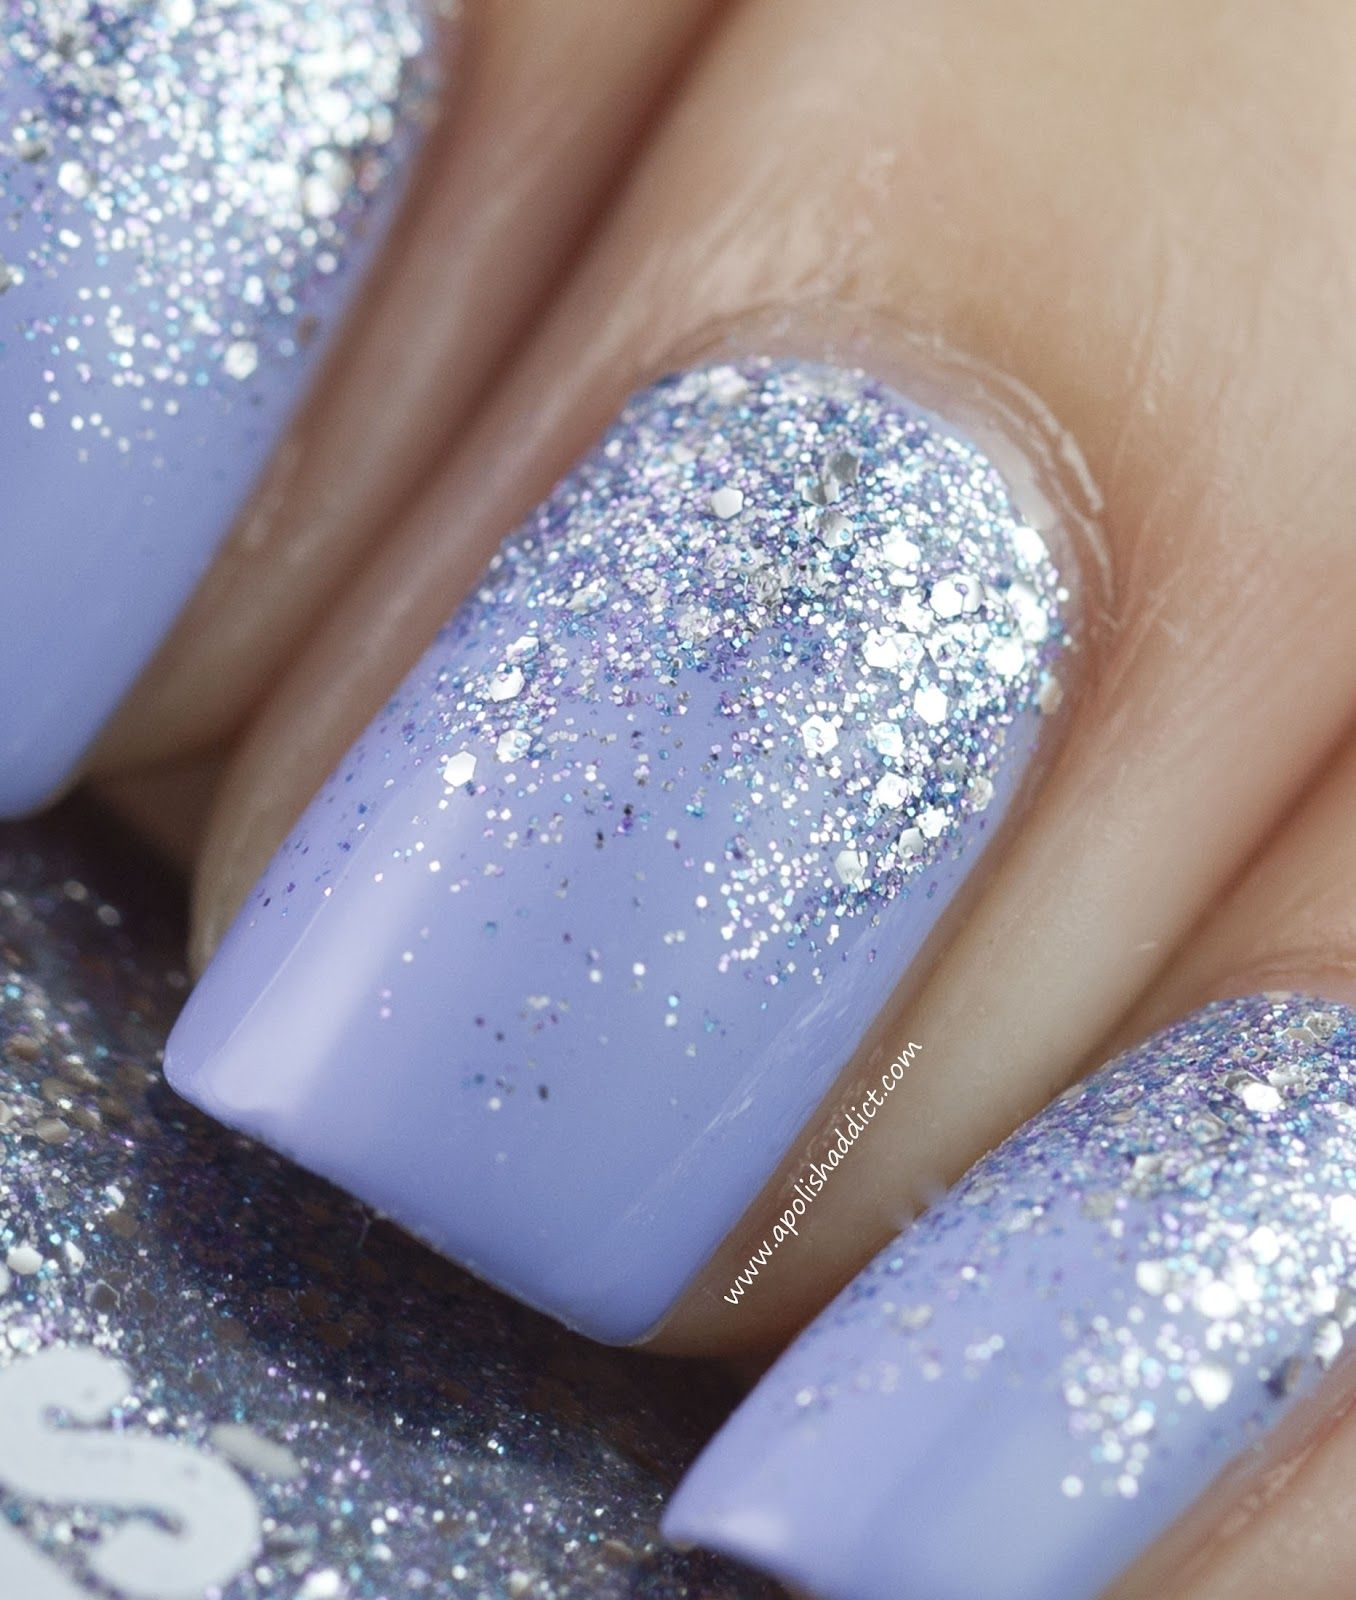 purple & sparkles! Yes and more yes!